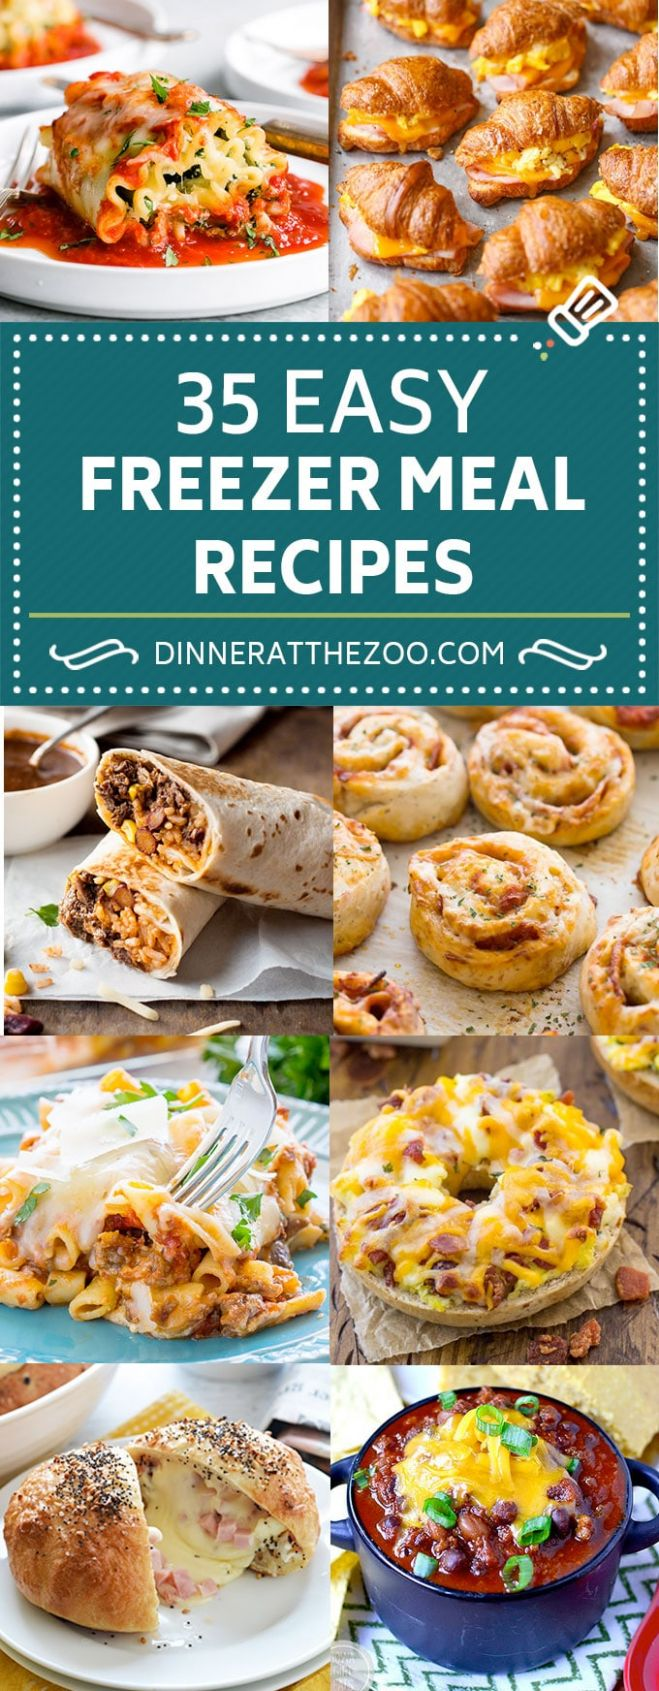 11 Easy Freezer Meal Recipes - Dinner at the Zoo